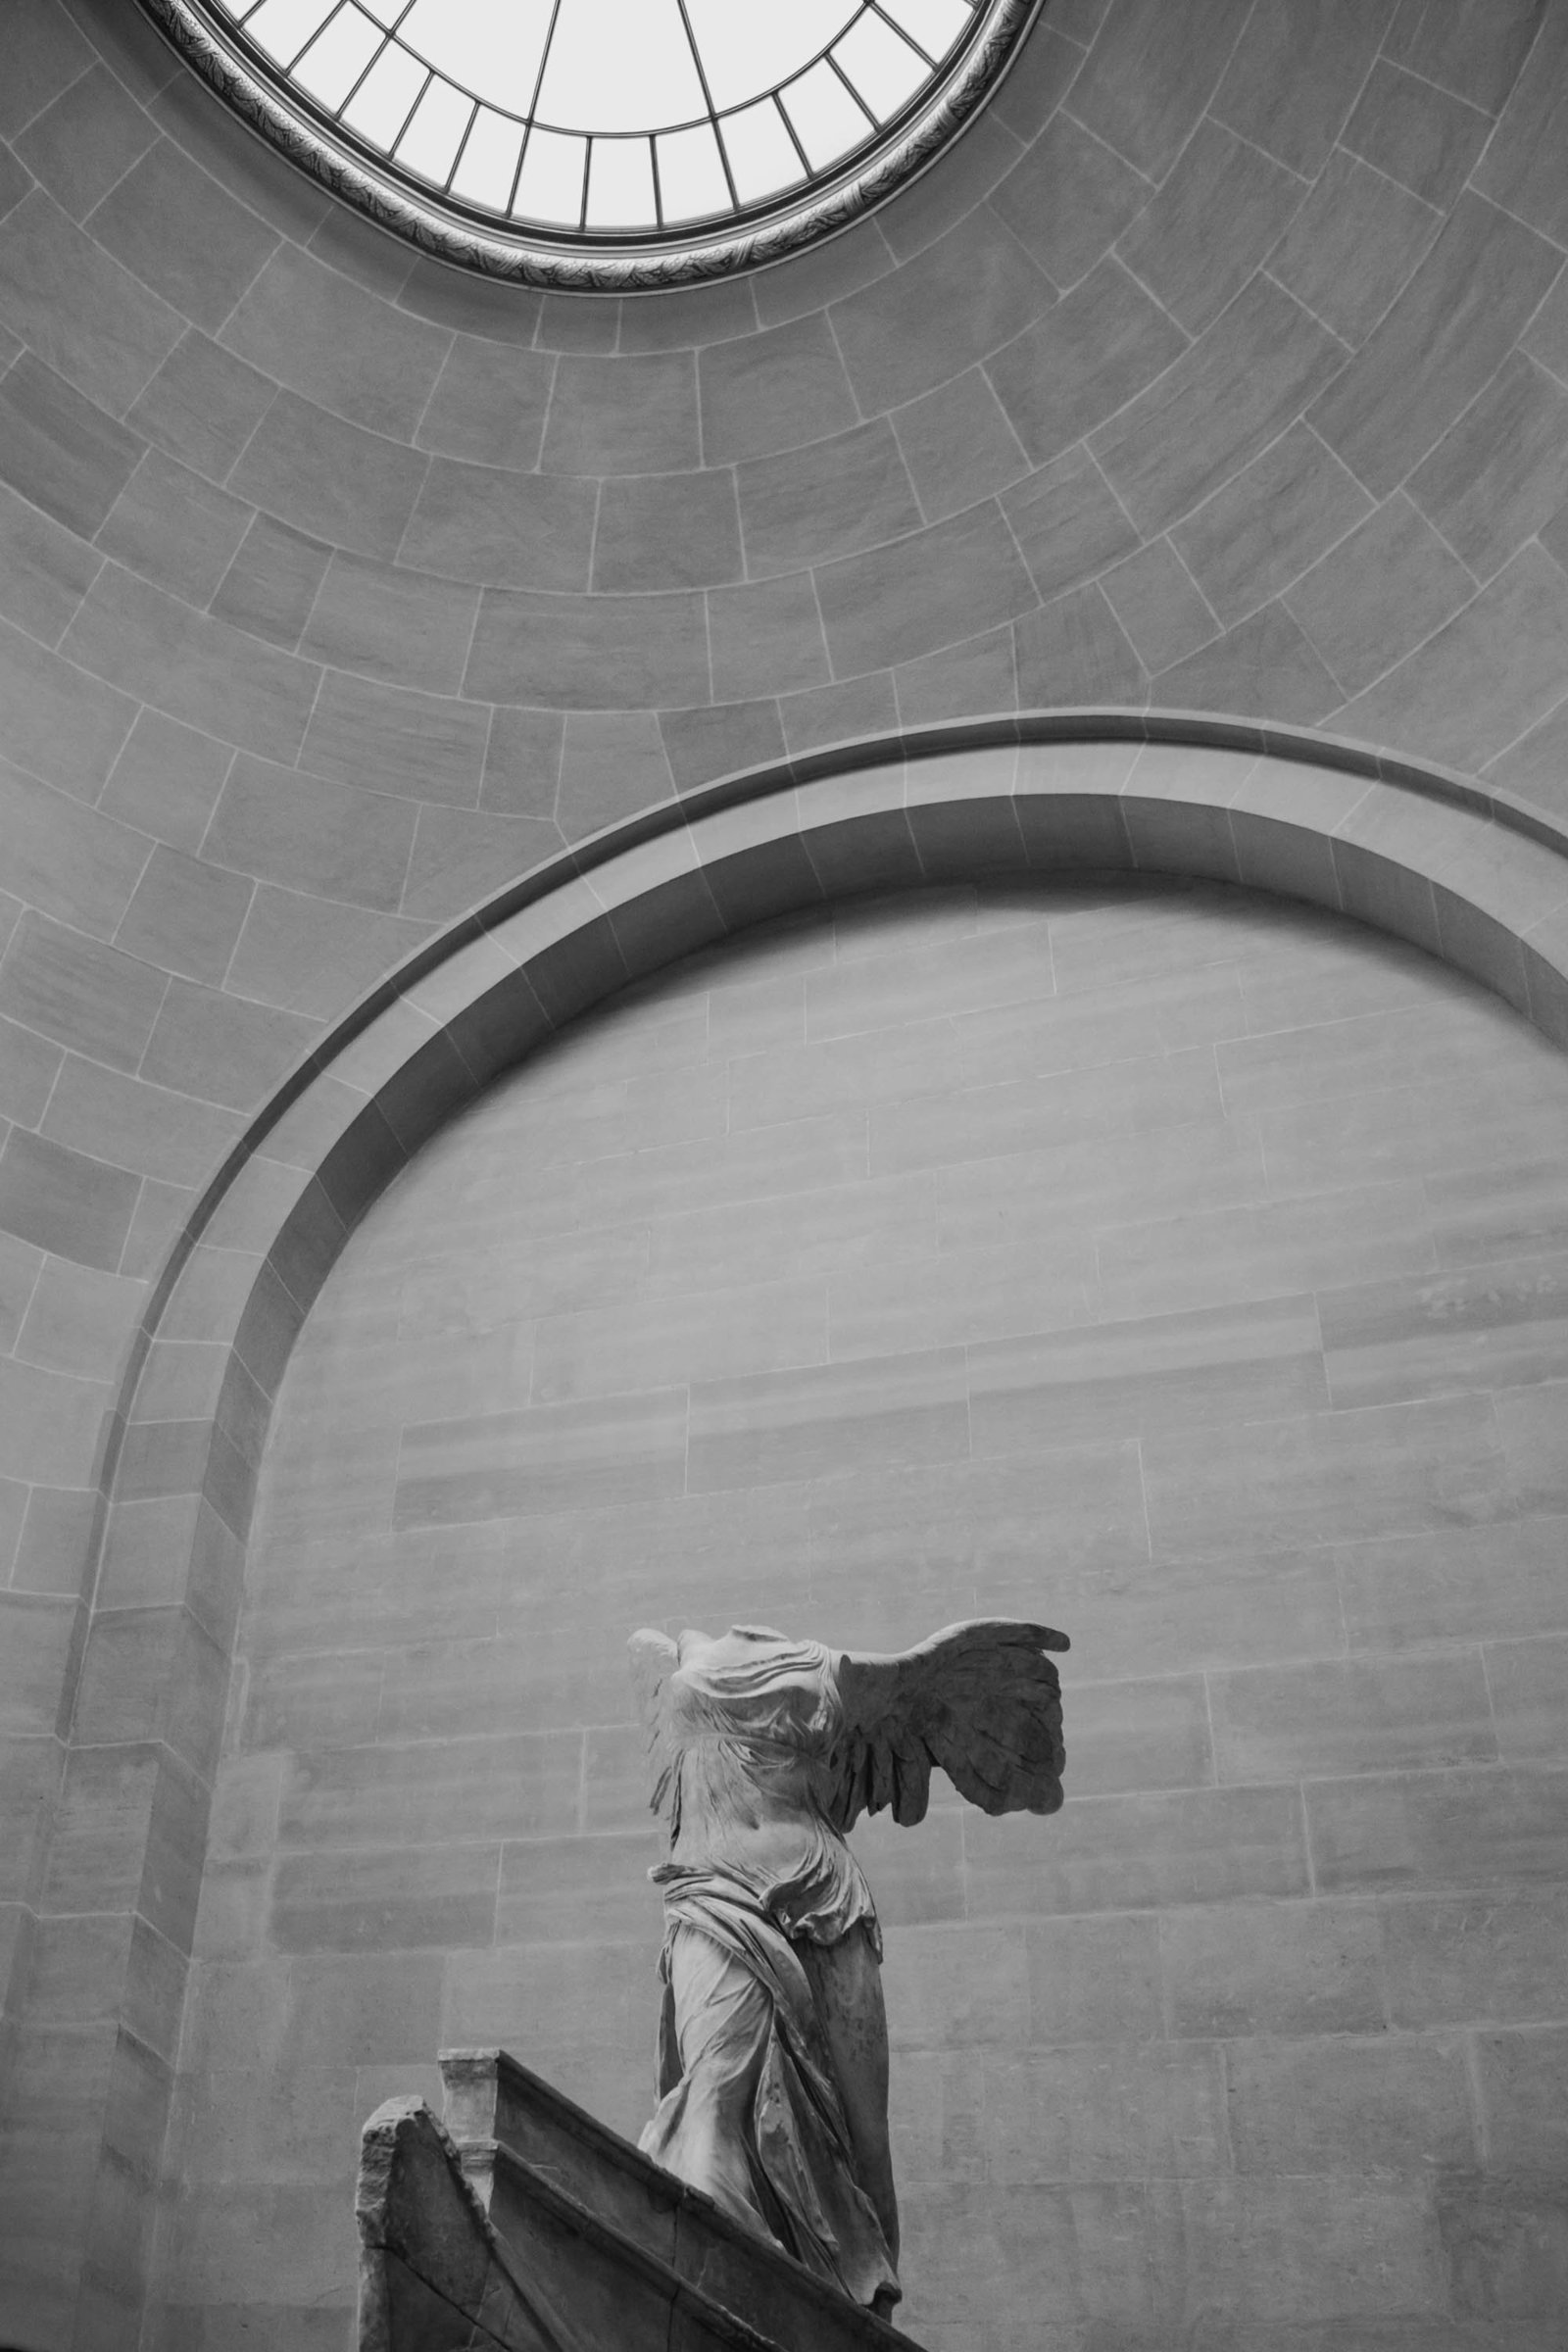 winged-nike-statue-paris-france-travel-destination-wedding-kate-timbers-photography-1870